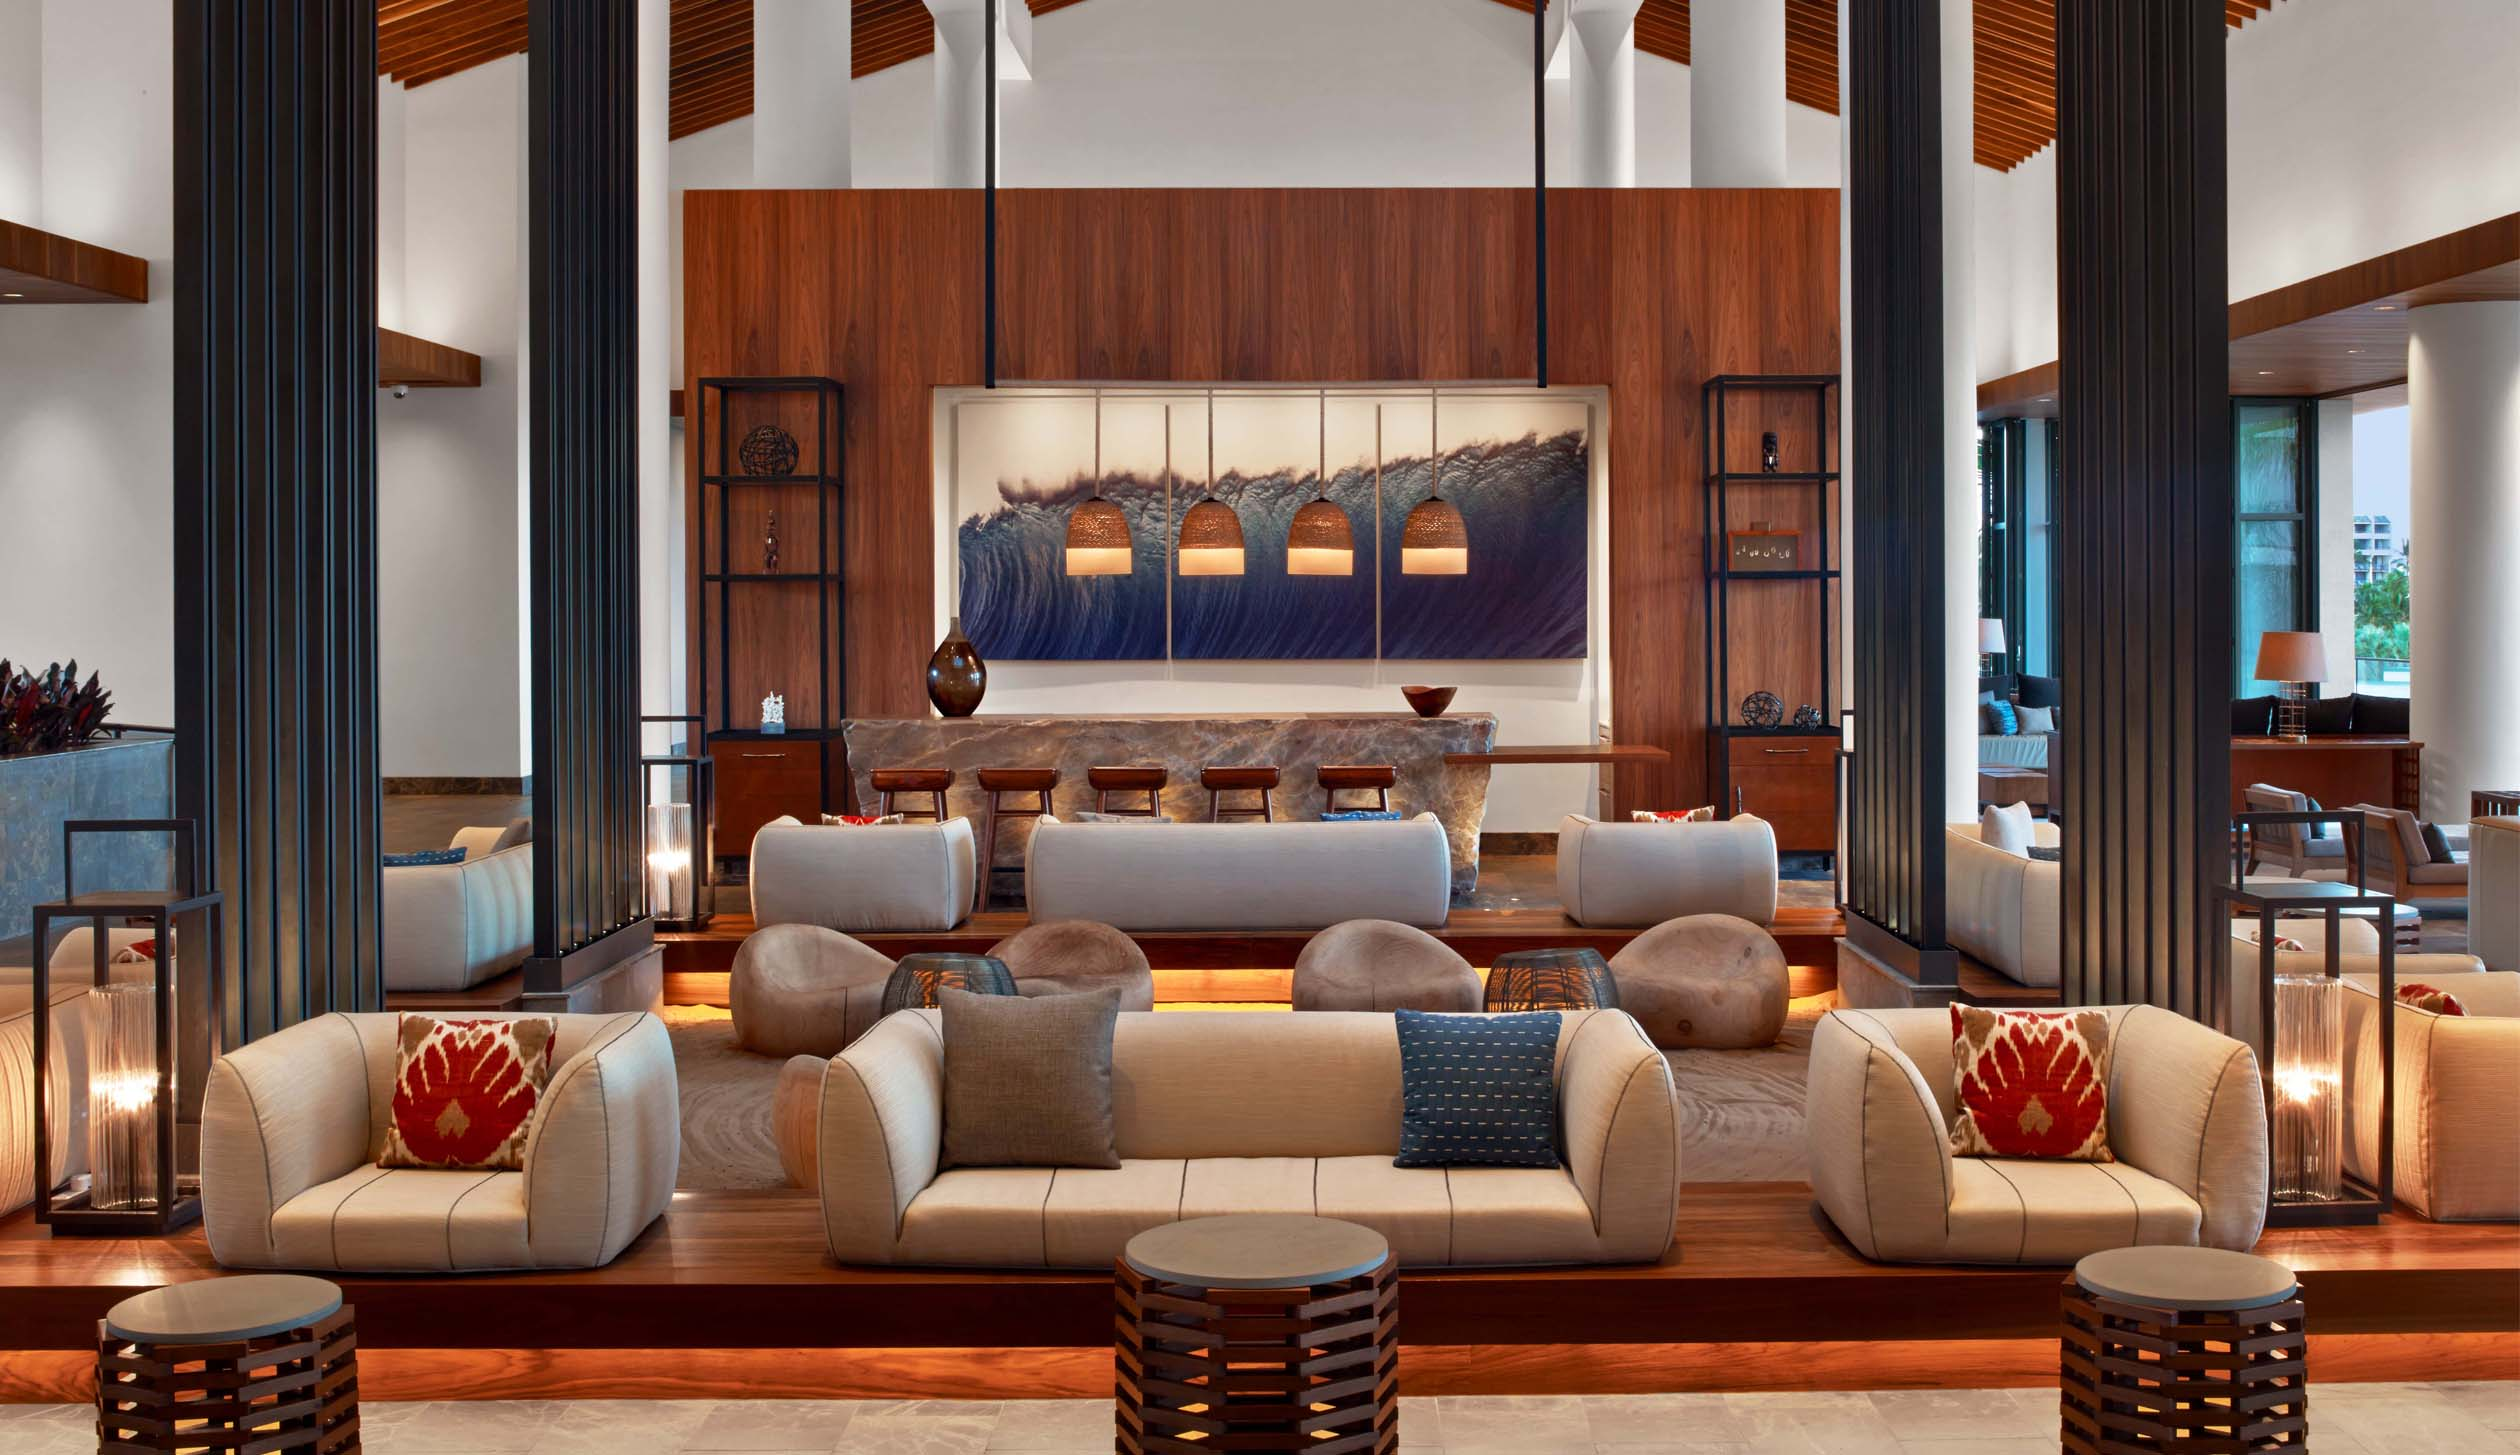 The bar and lounge at the Andaz Maui at Wailea Resort, one of a relatively new line of boutique hotels opened by Hyatt.